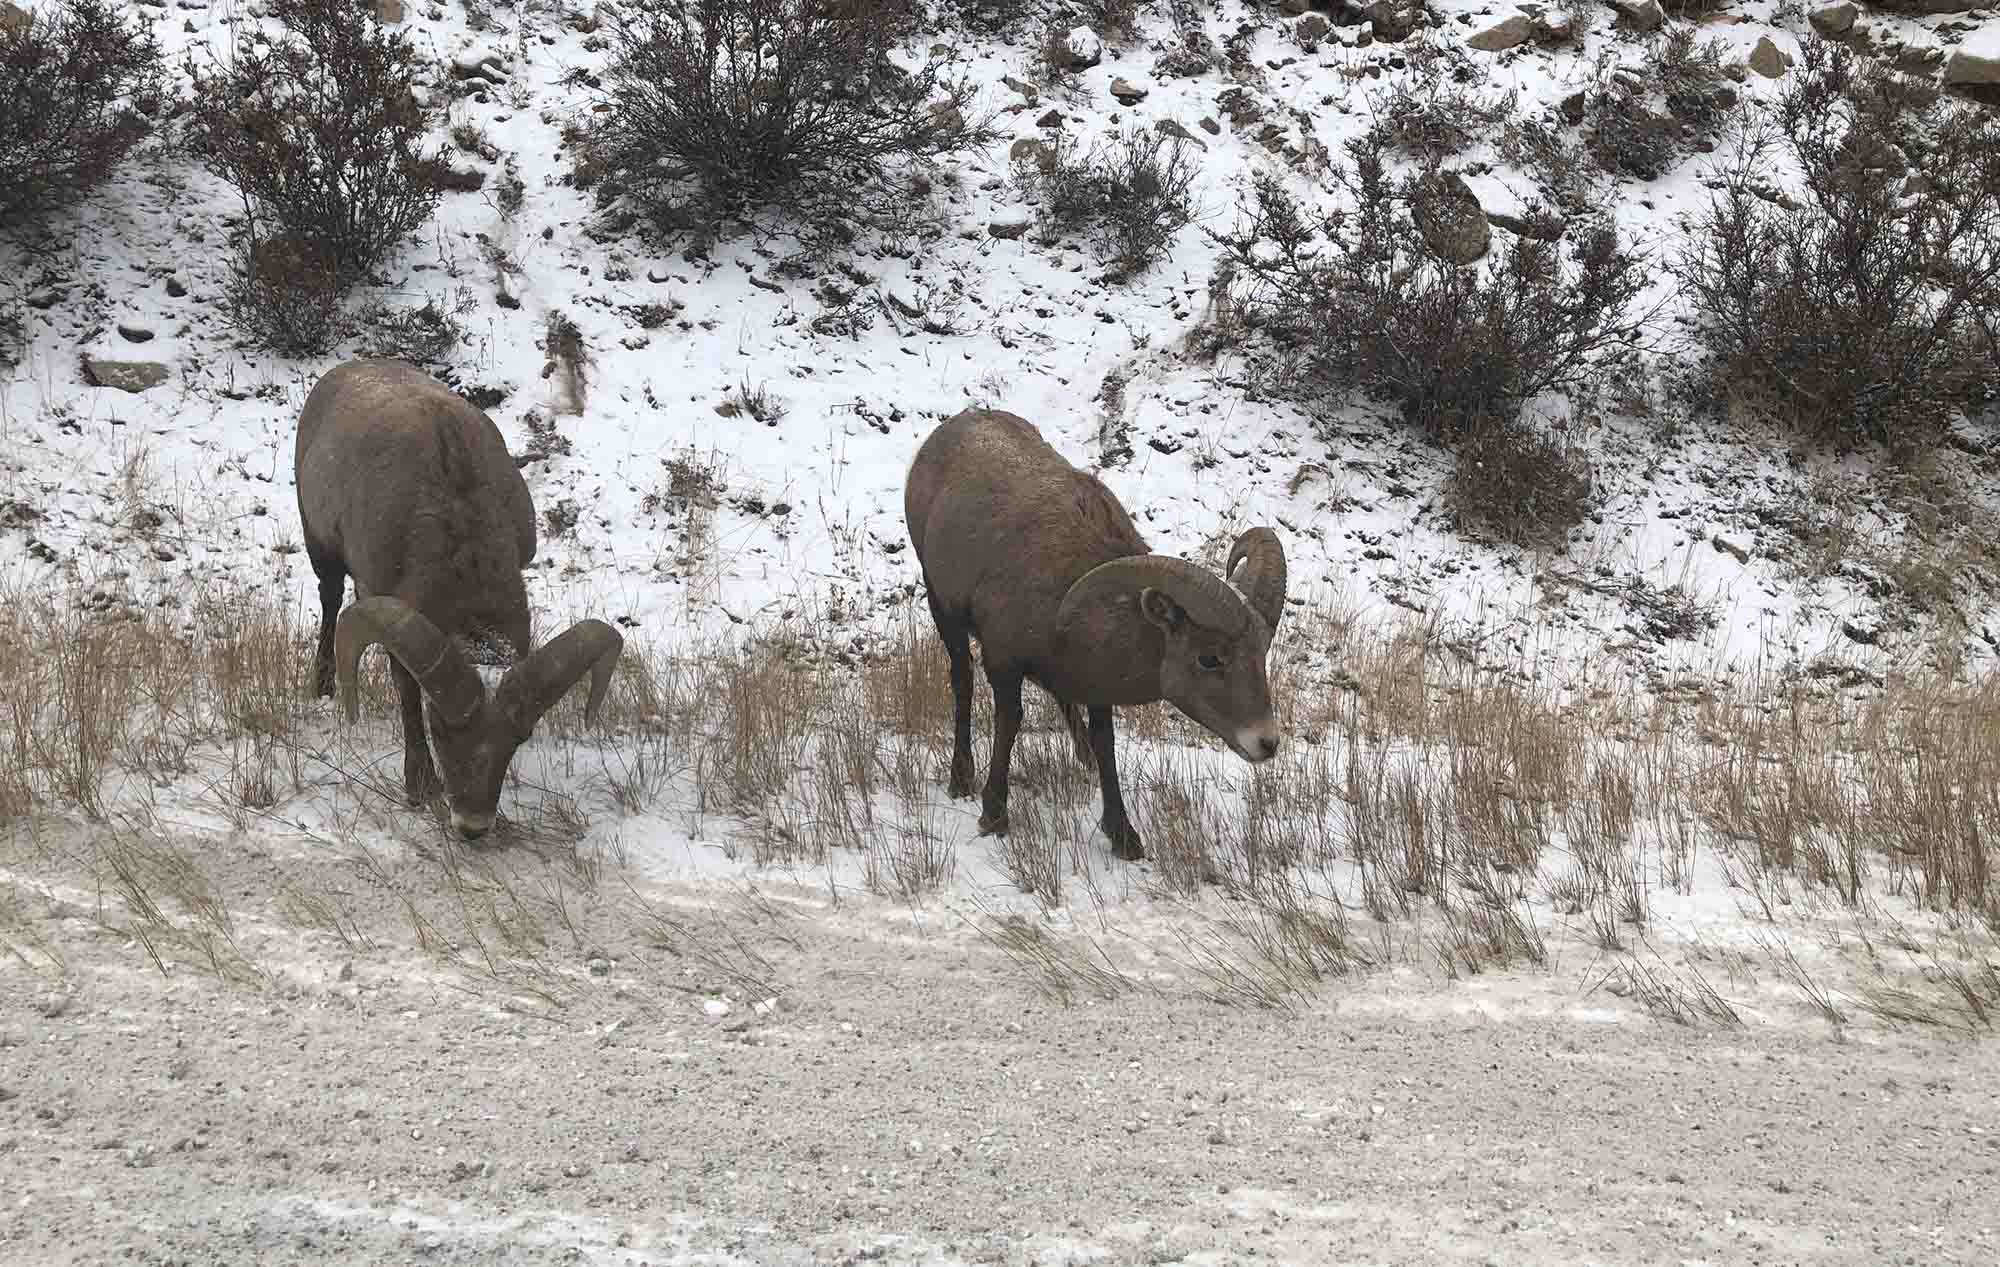 Bighorn Sheep Festival in Idaho Springs, Colorado